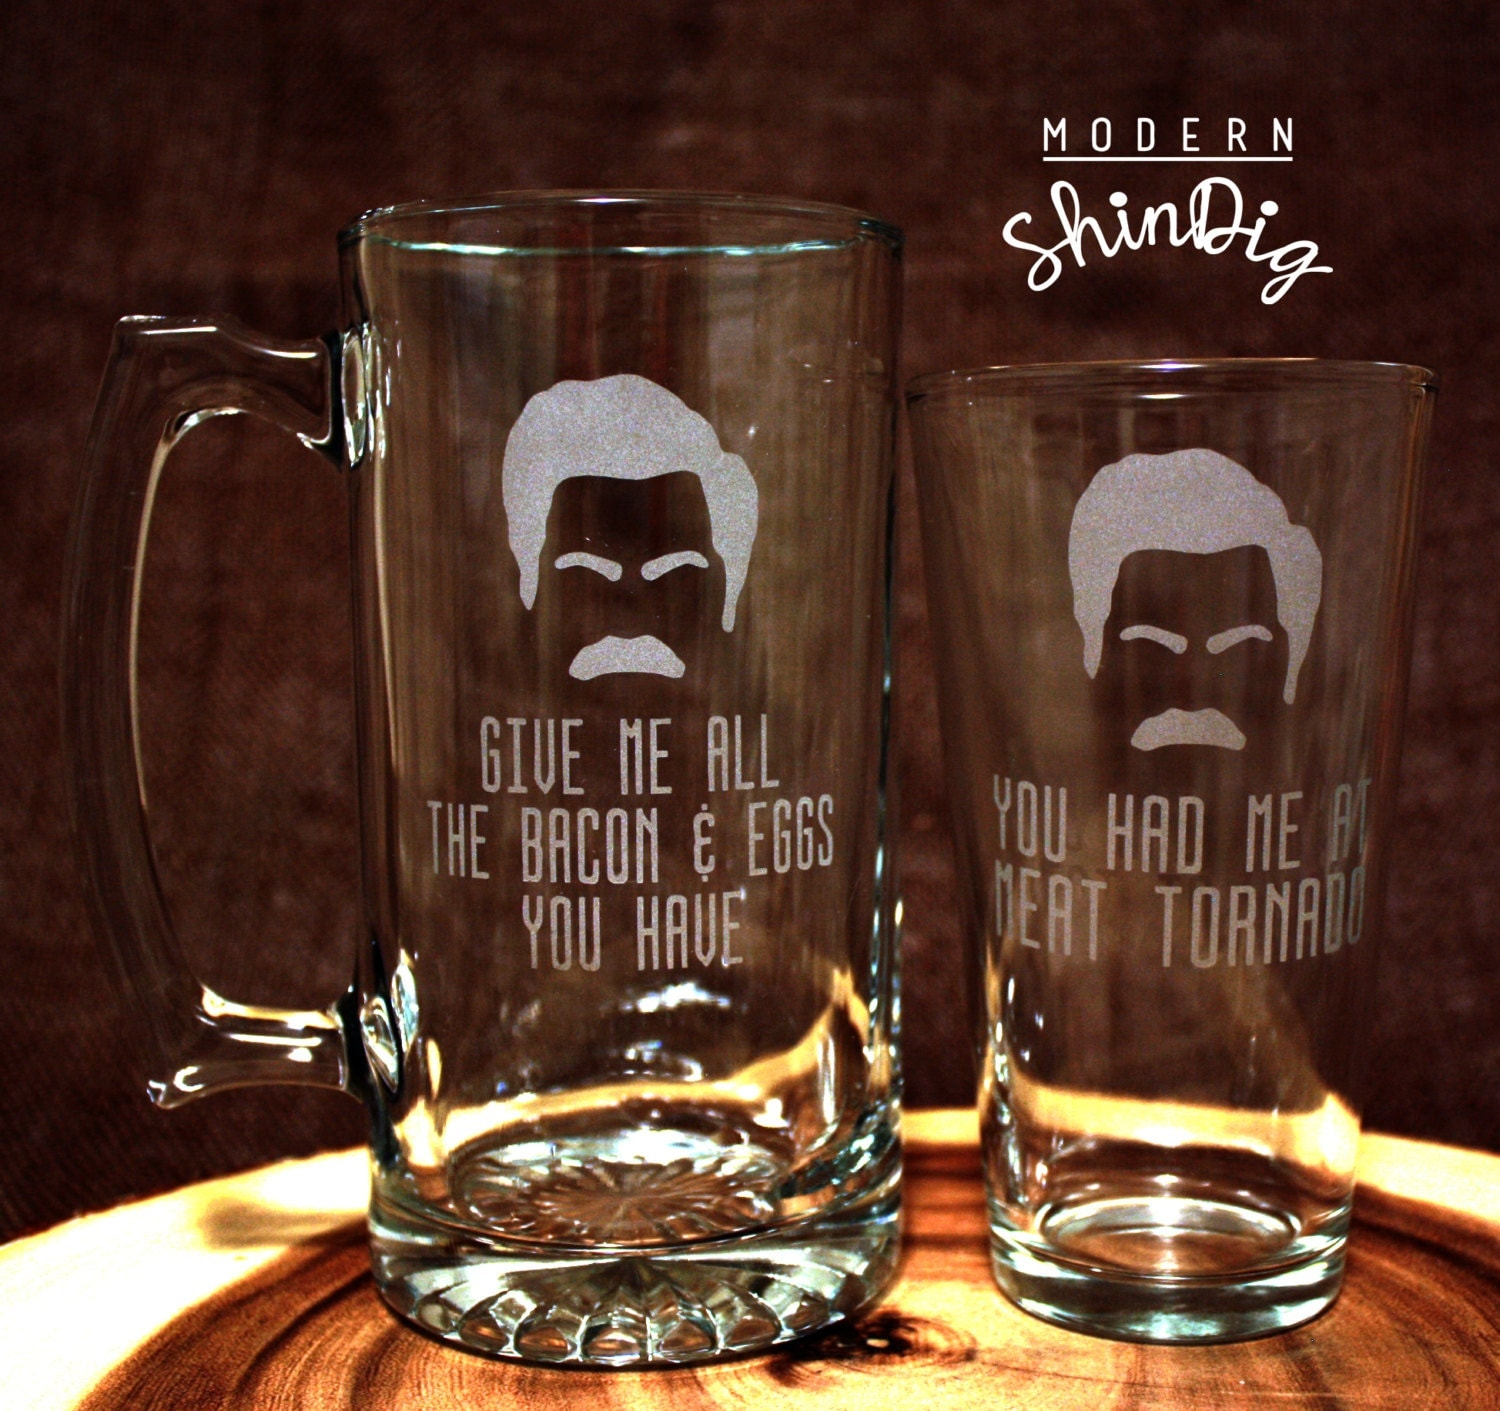 Ron Swanson Quotes Etched Glasses Beer Mug or Pint Glass